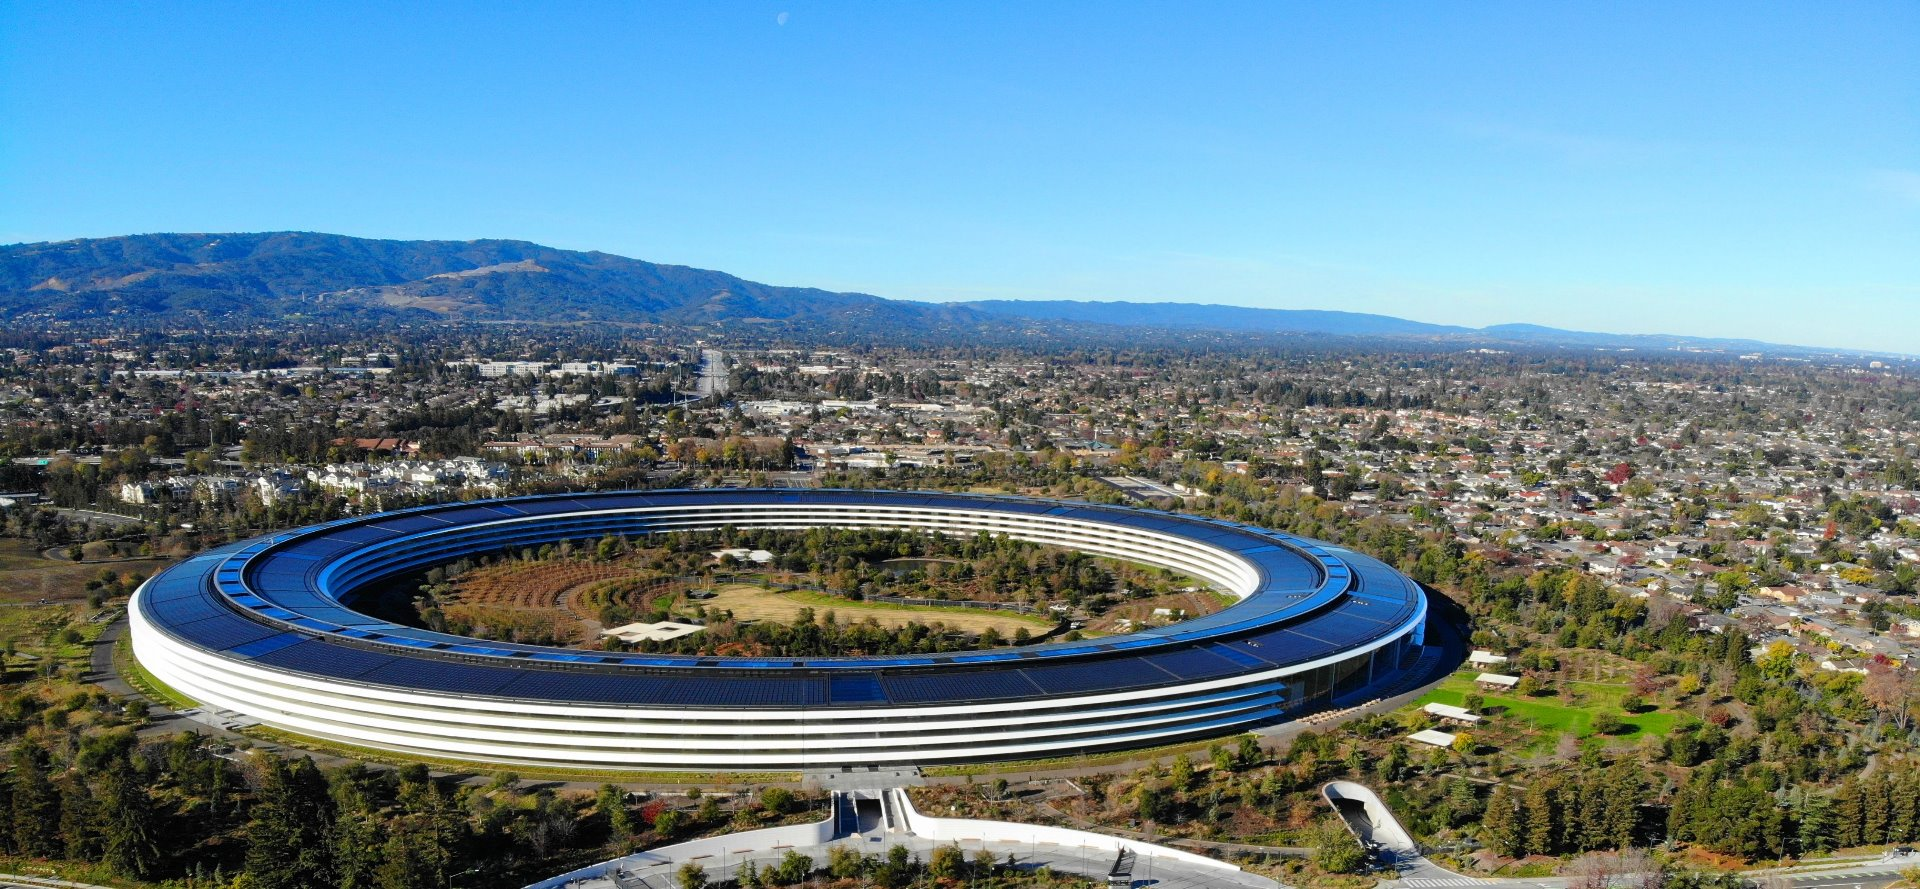 Apple's_Spaceship_Headquarter_Guided_Tour_in_Cupertino